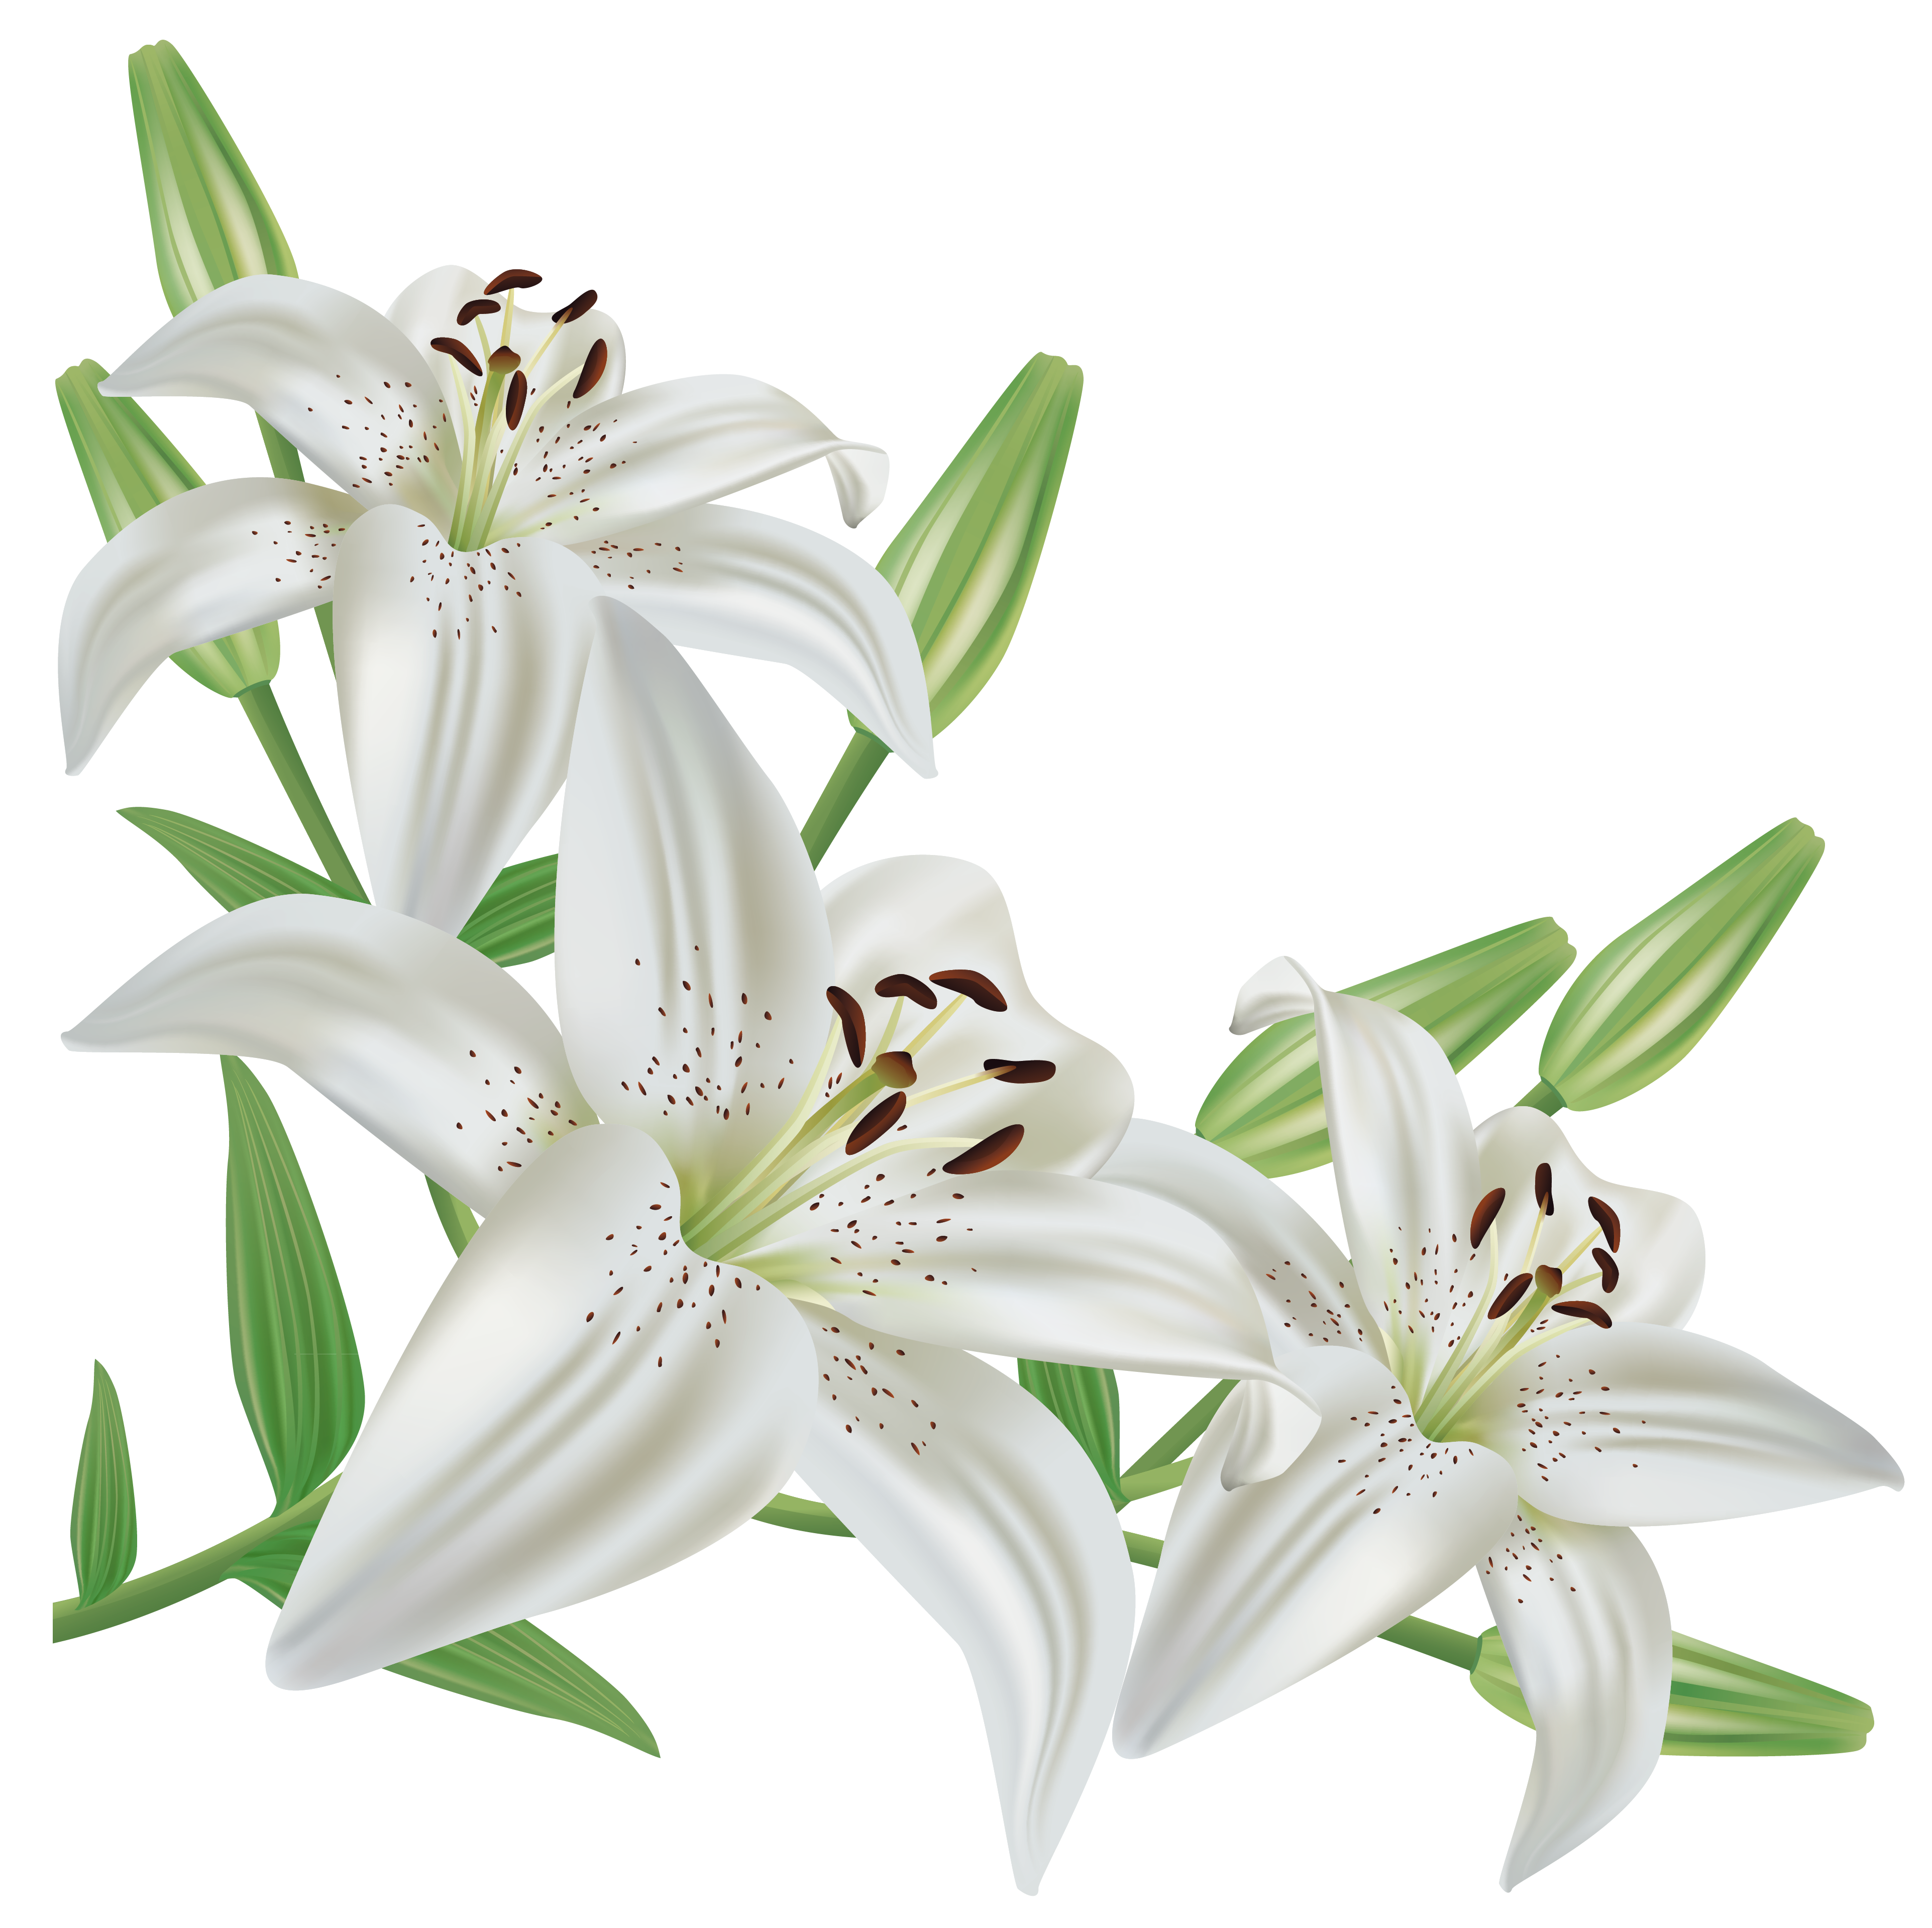 Free clipart easter lily clipart images gallery for free download.